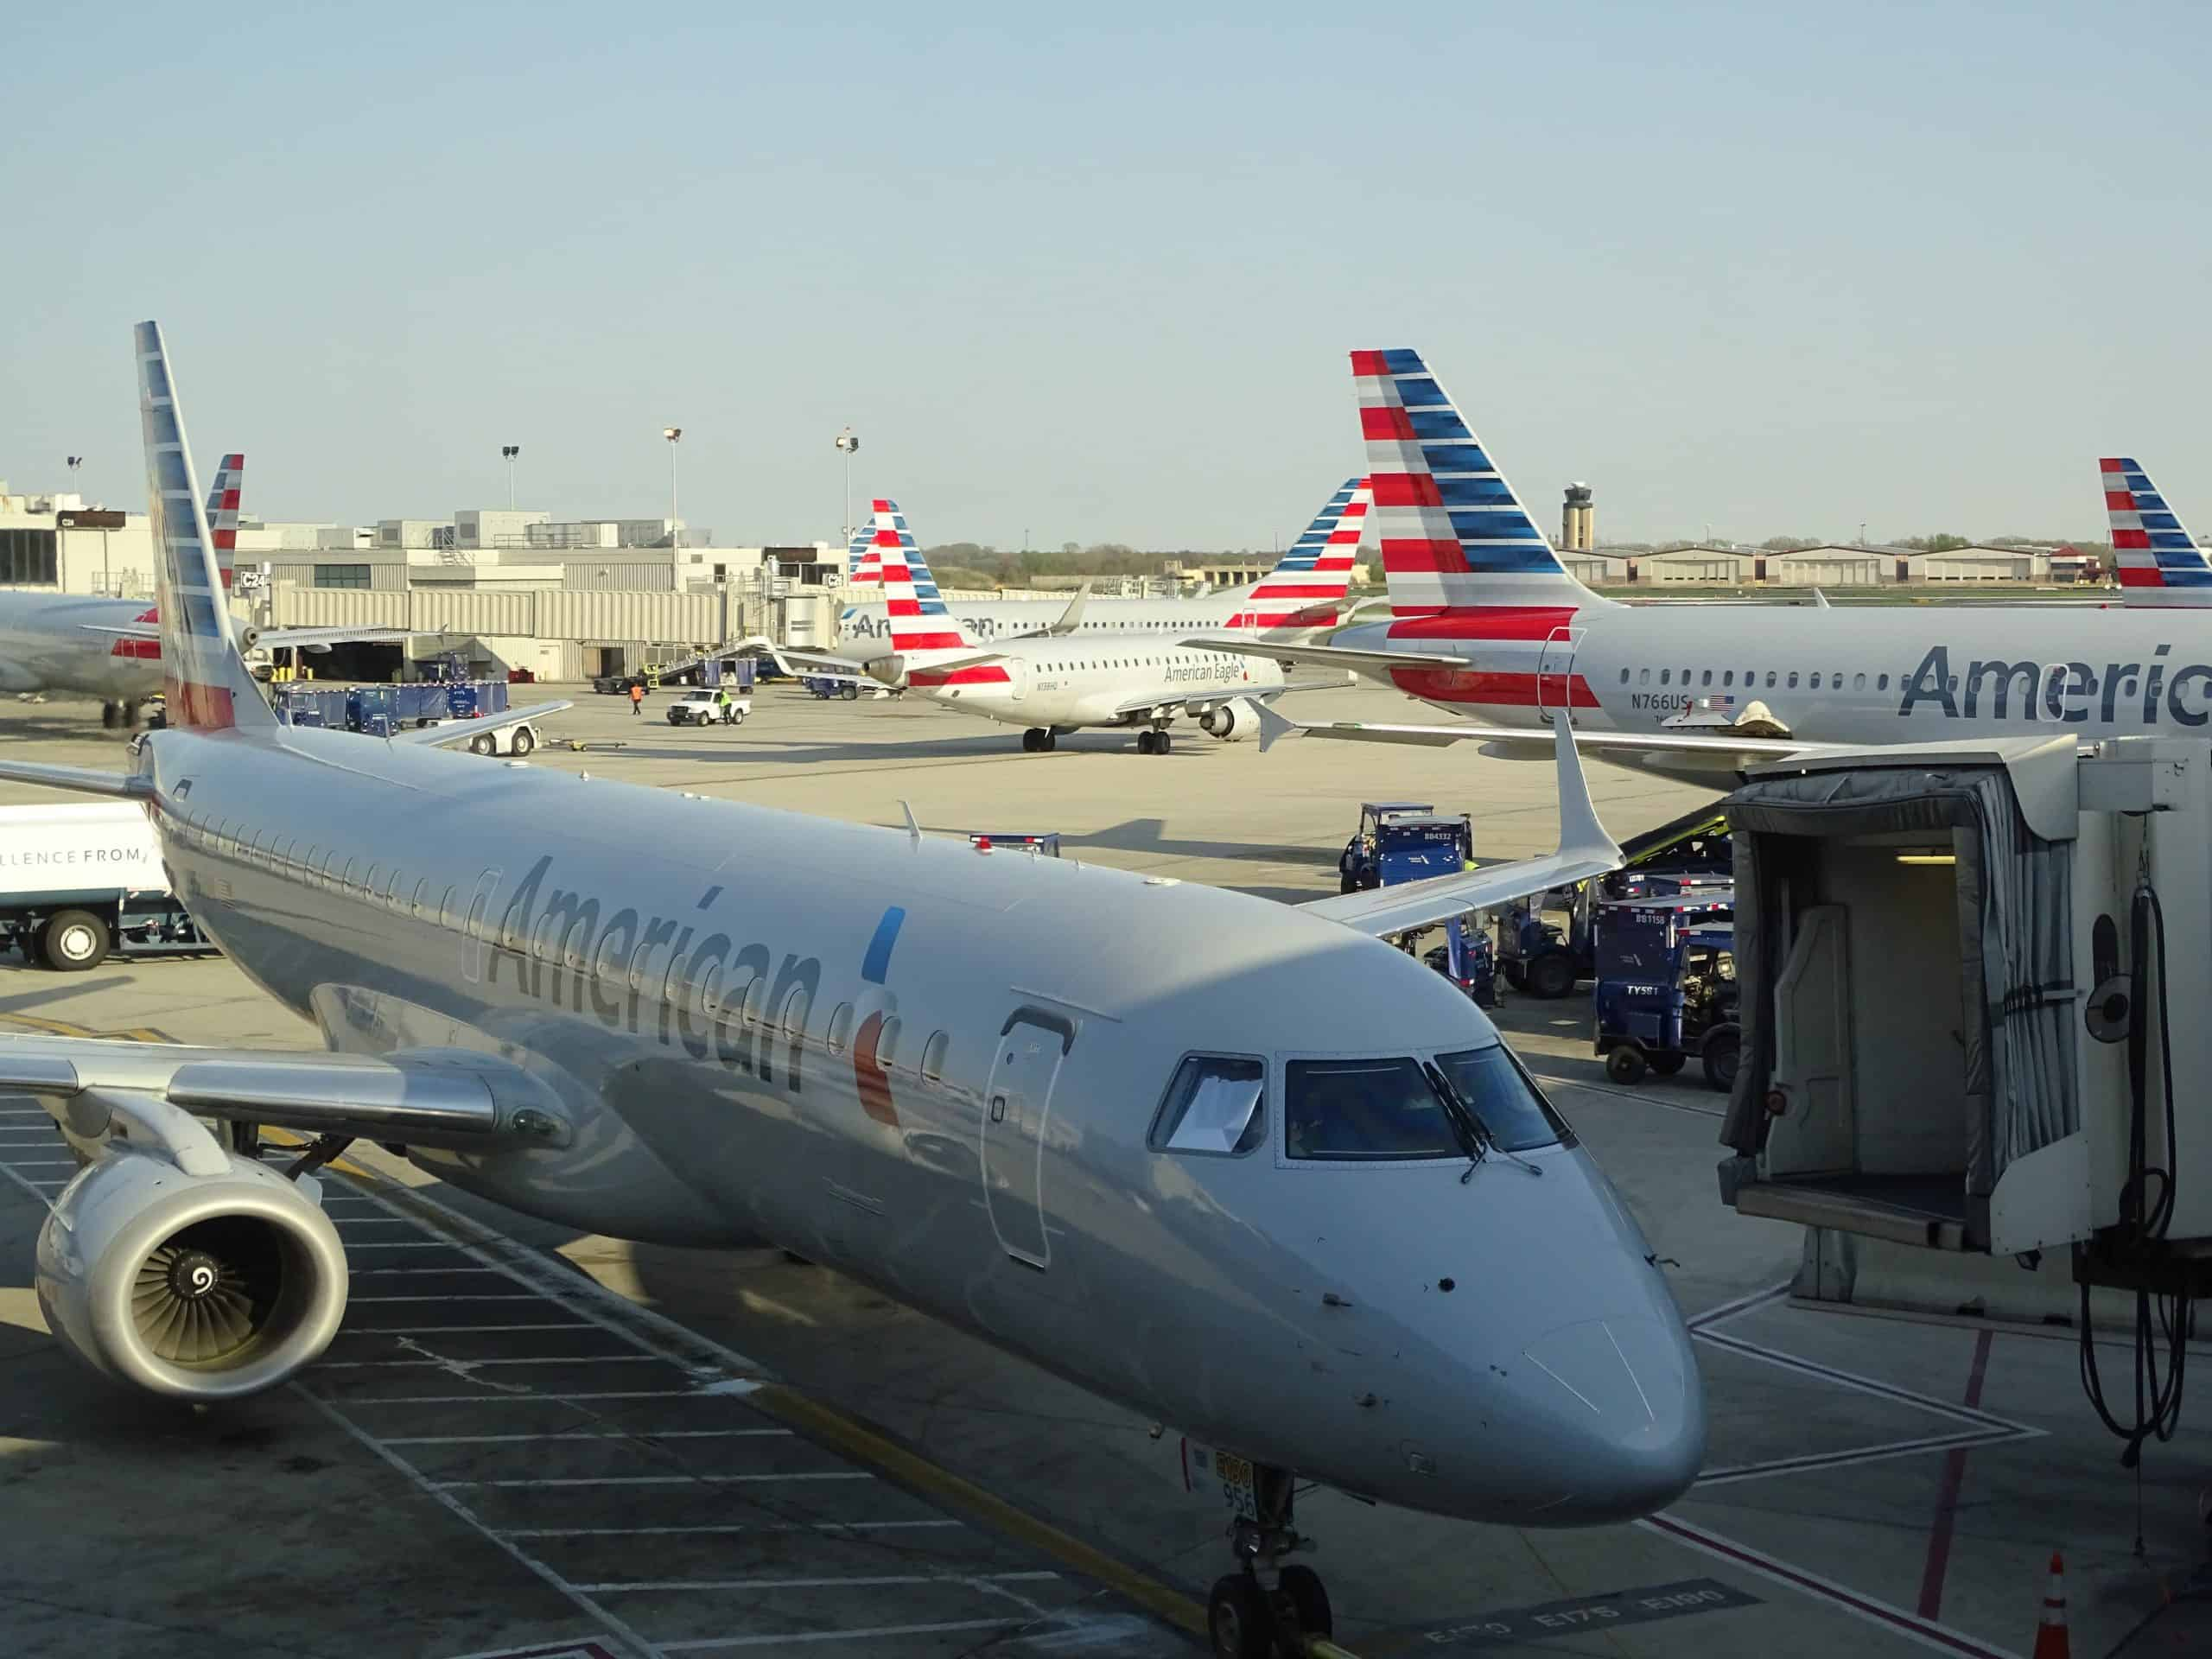 Earn miles and points to travel for less - photo of American Airlines plane at the airport